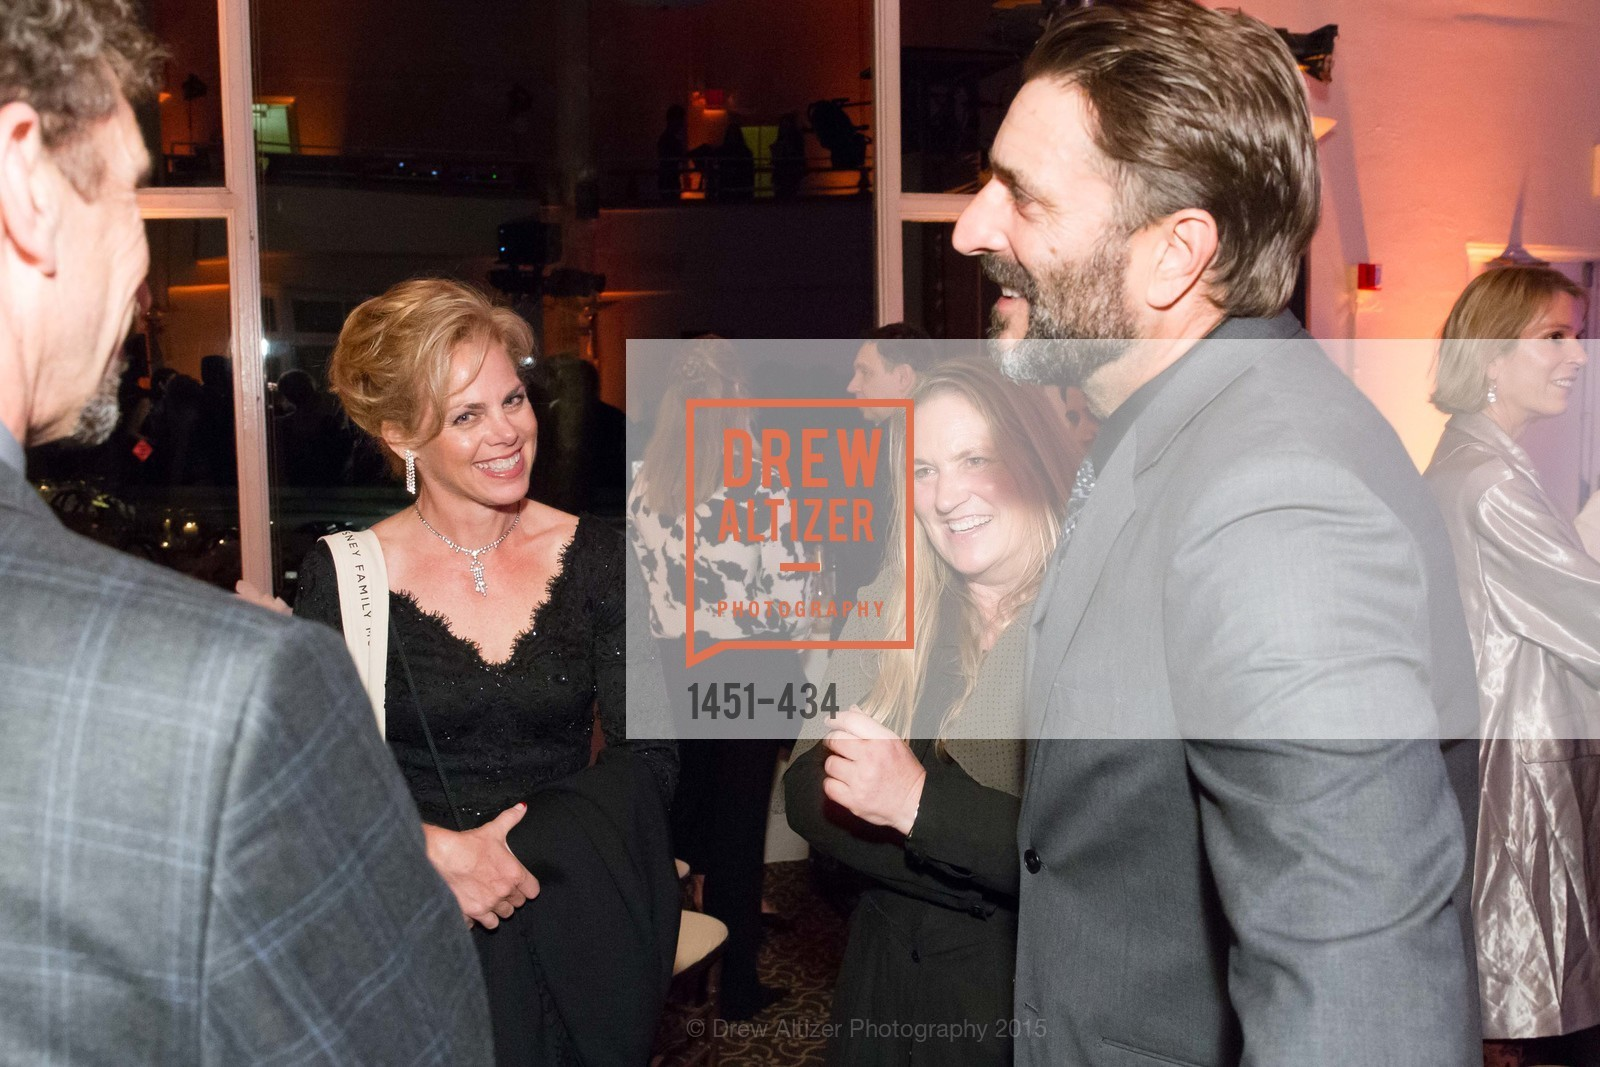 Extras, The Walt Disney Family Museum Fundraising Gala and Diane Disney Miller Lifetime Achievement Award, November 3rd, 2015, Photo,Drew Altizer, Drew Altizer Photography, full-service agency, private events, San Francisco photographer, photographer california